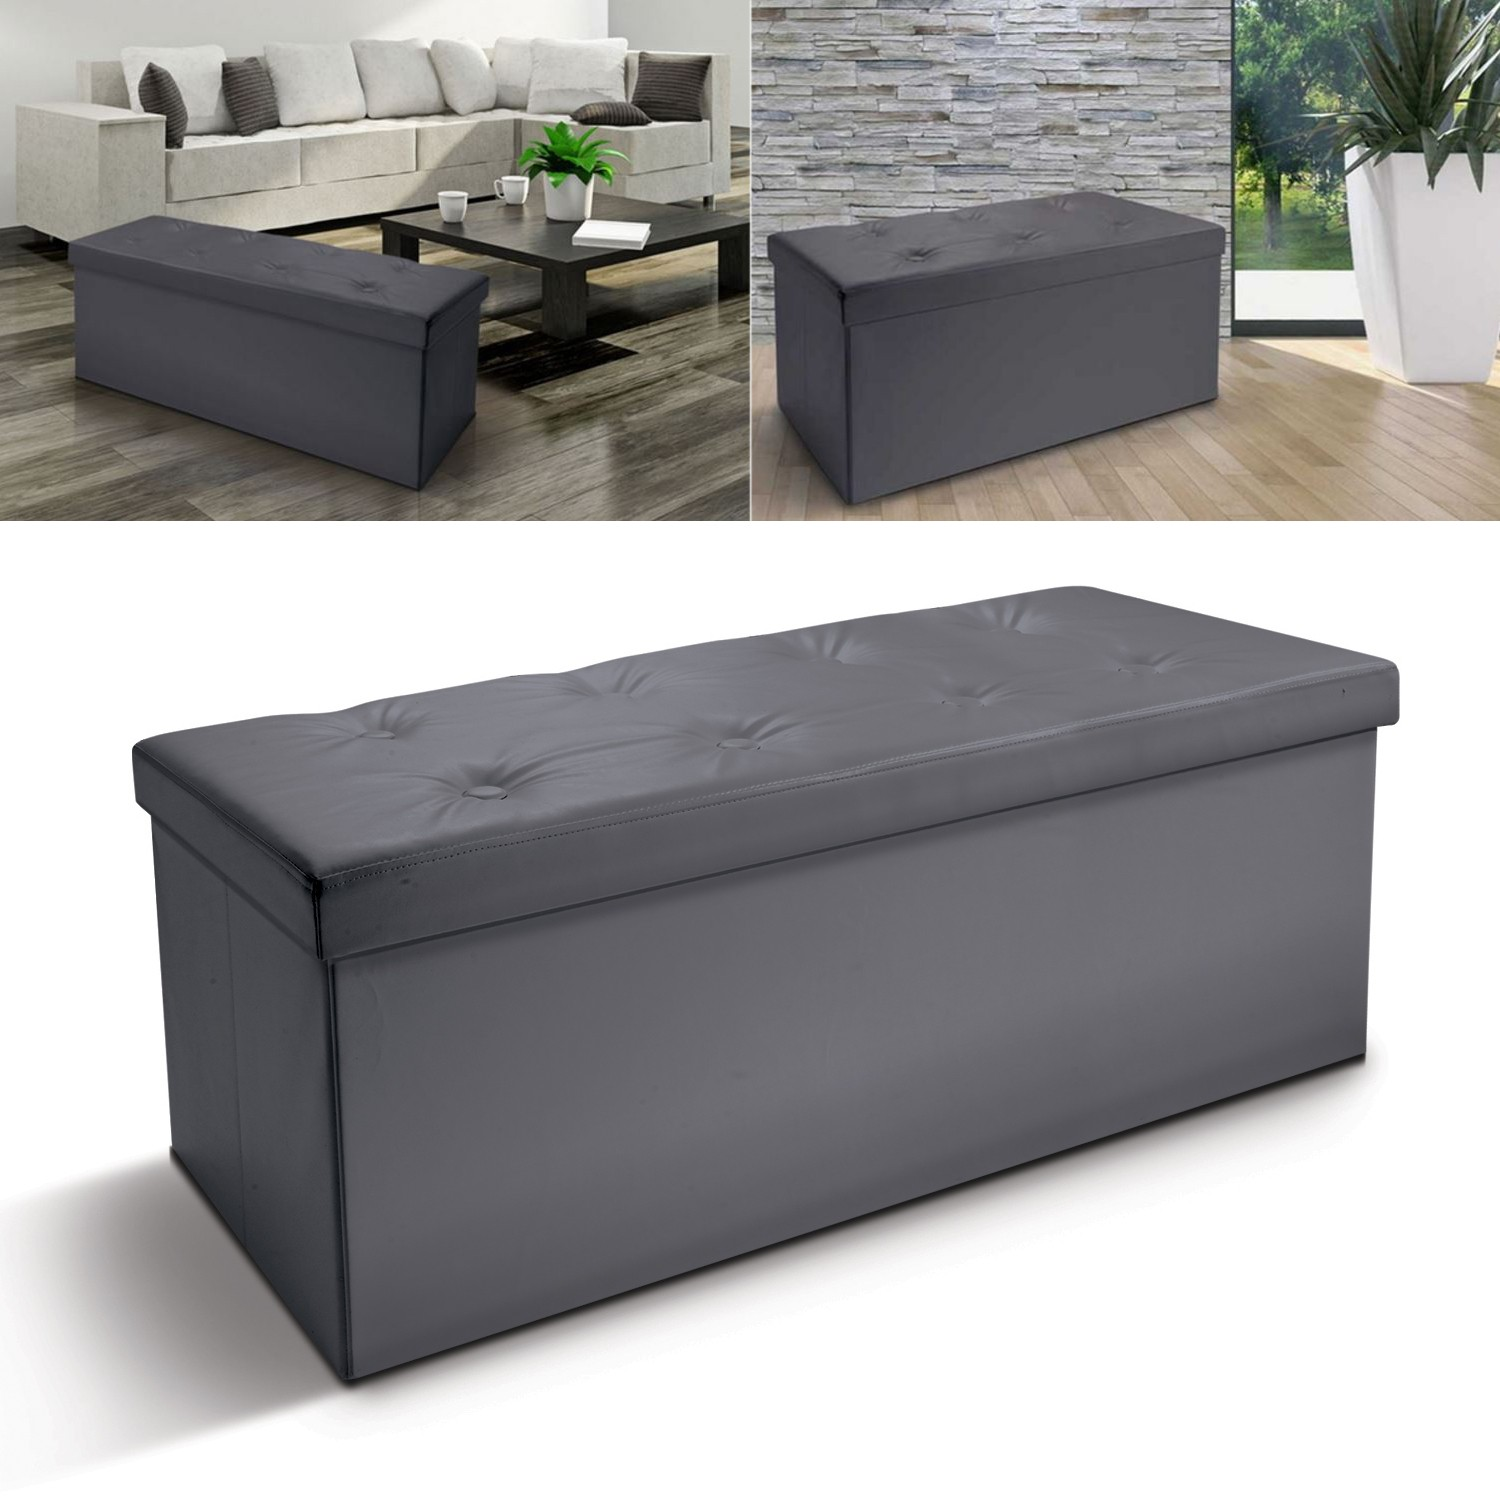 banc coffre rangement pvc gris 100x38x38 cm pliable. Black Bedroom Furniture Sets. Home Design Ideas